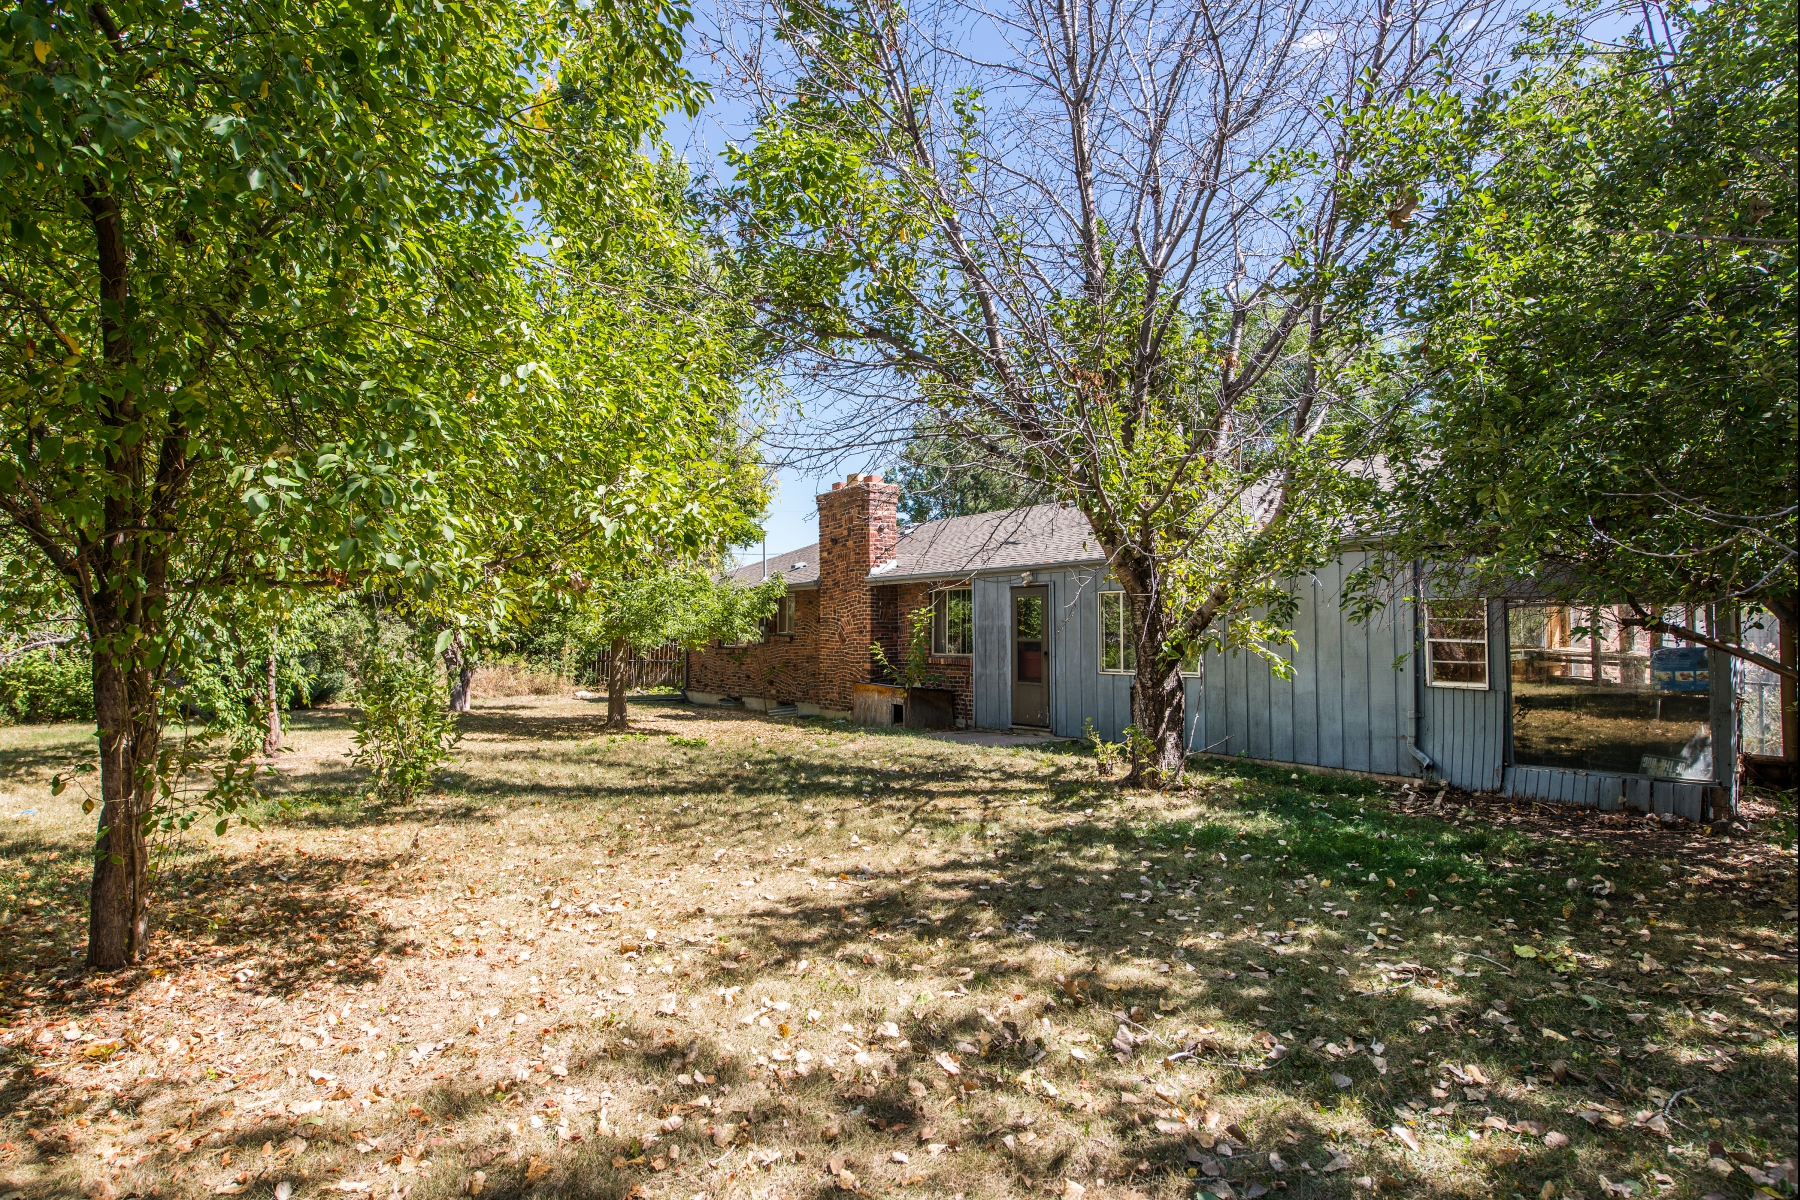 Single Family Home for Sale at Great neighborhood, huge potential for investor! 6095 South Marshall Drive Littleton, Colorado 80123 United States